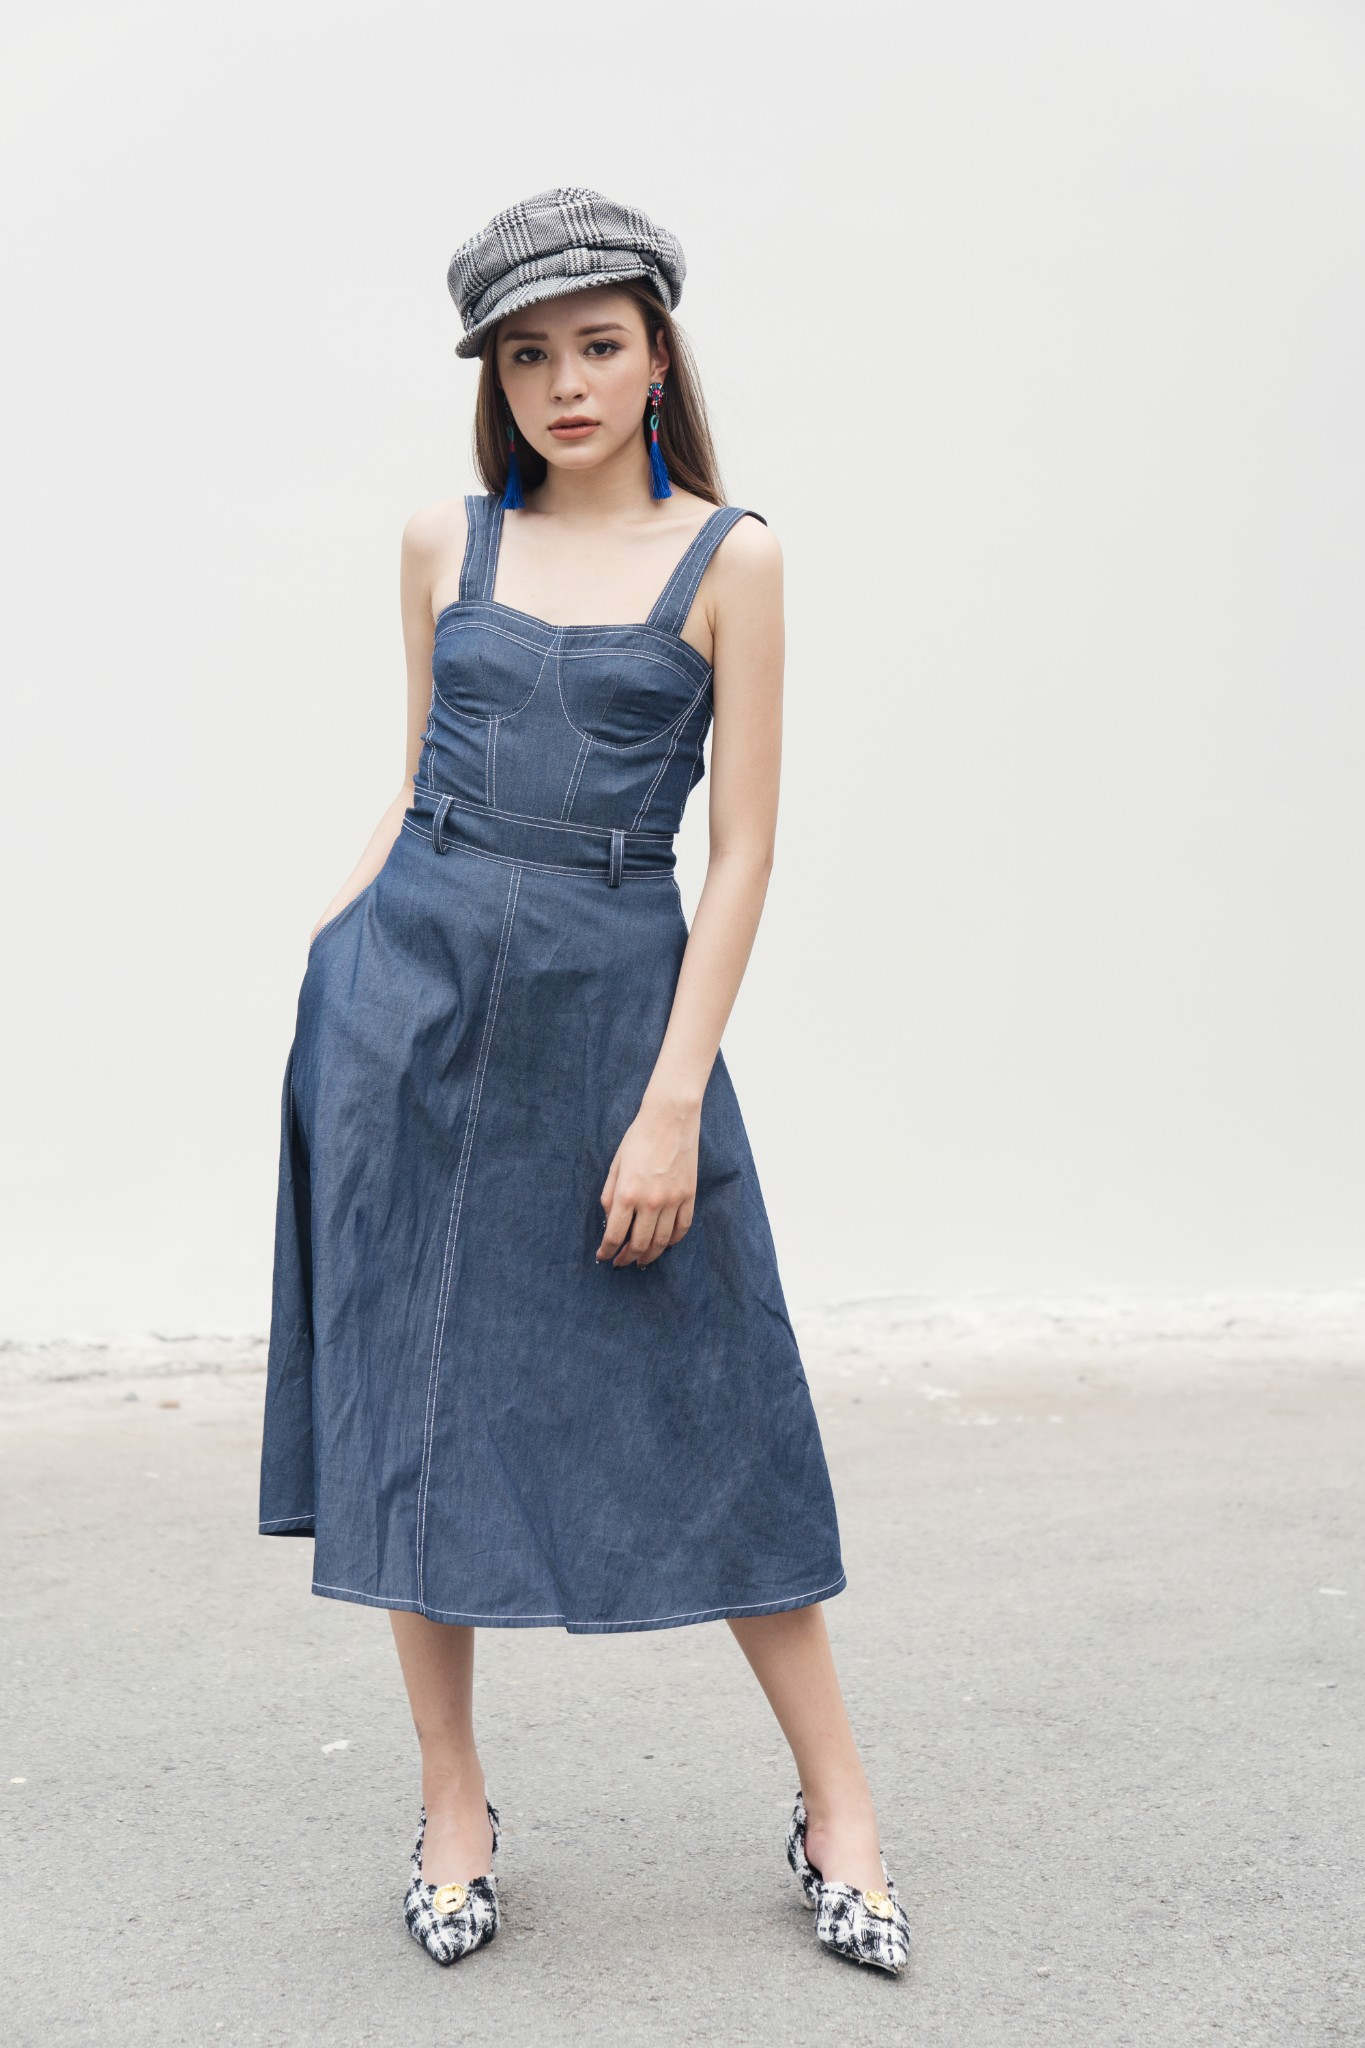 LOW CUT DENIM DRESS